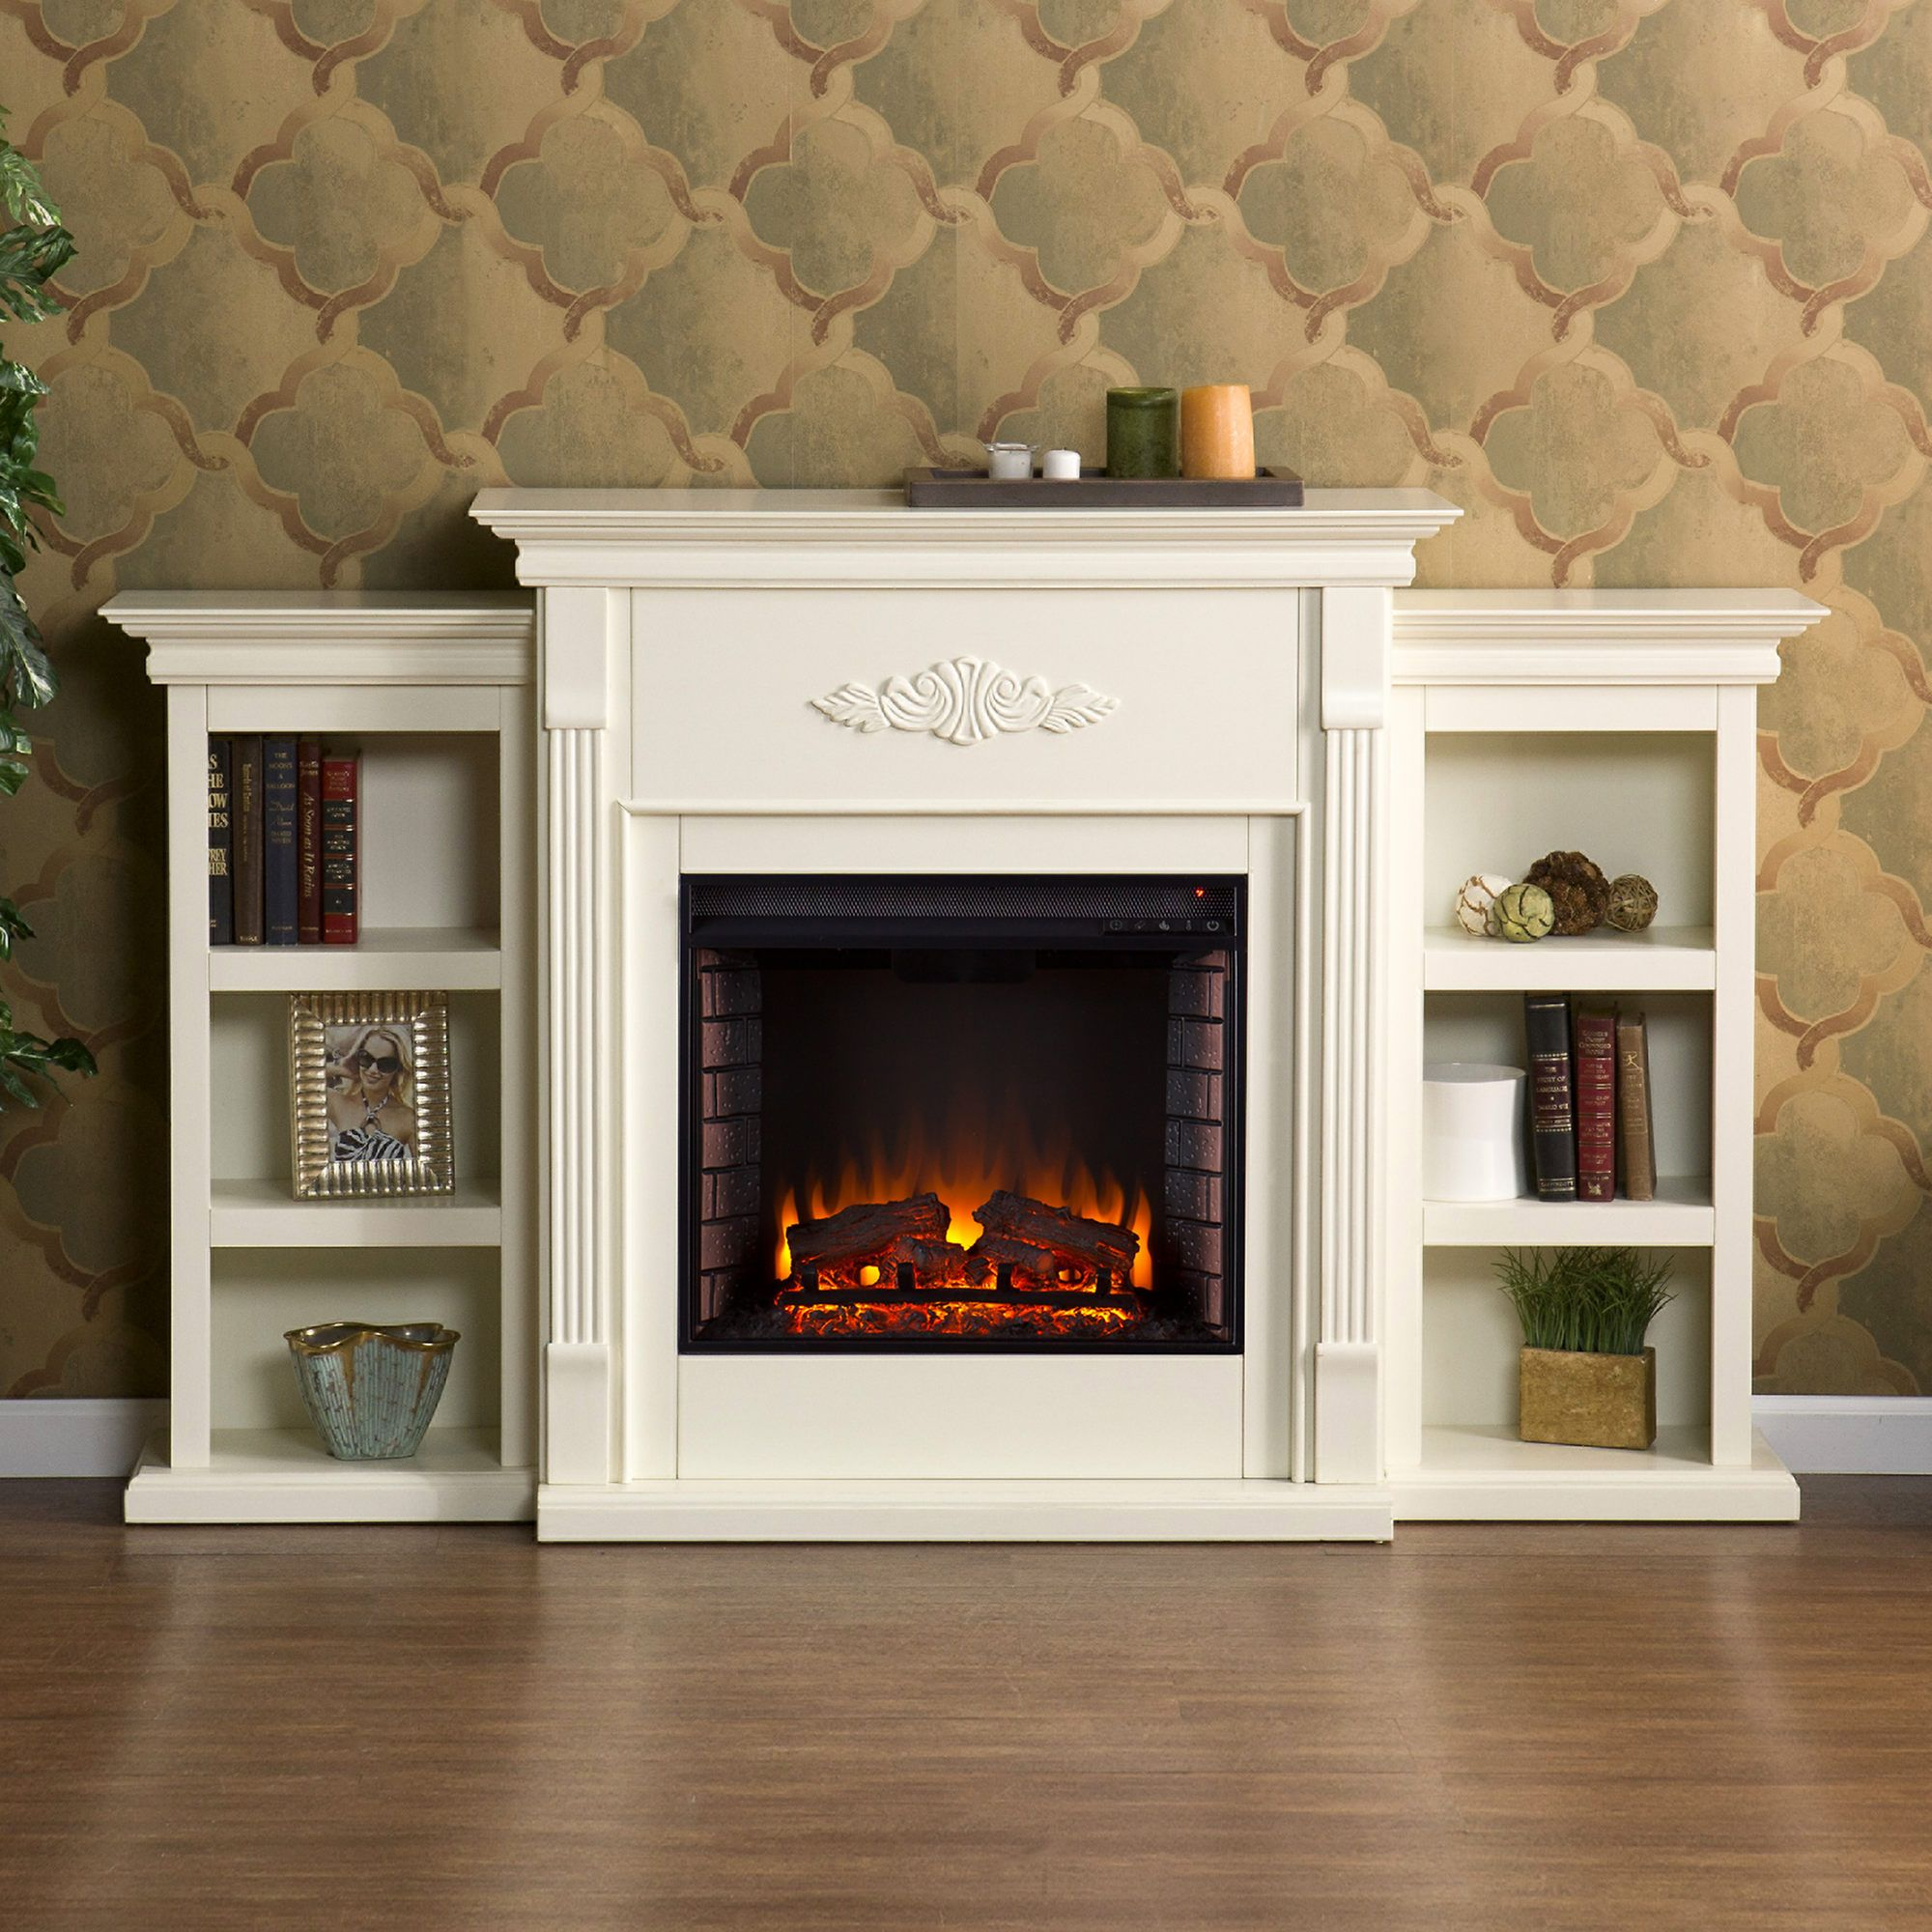 Raymour and Flanigan Fireplace Beautiful Sei Newport Electric Fireplace with Bookcases Ivory